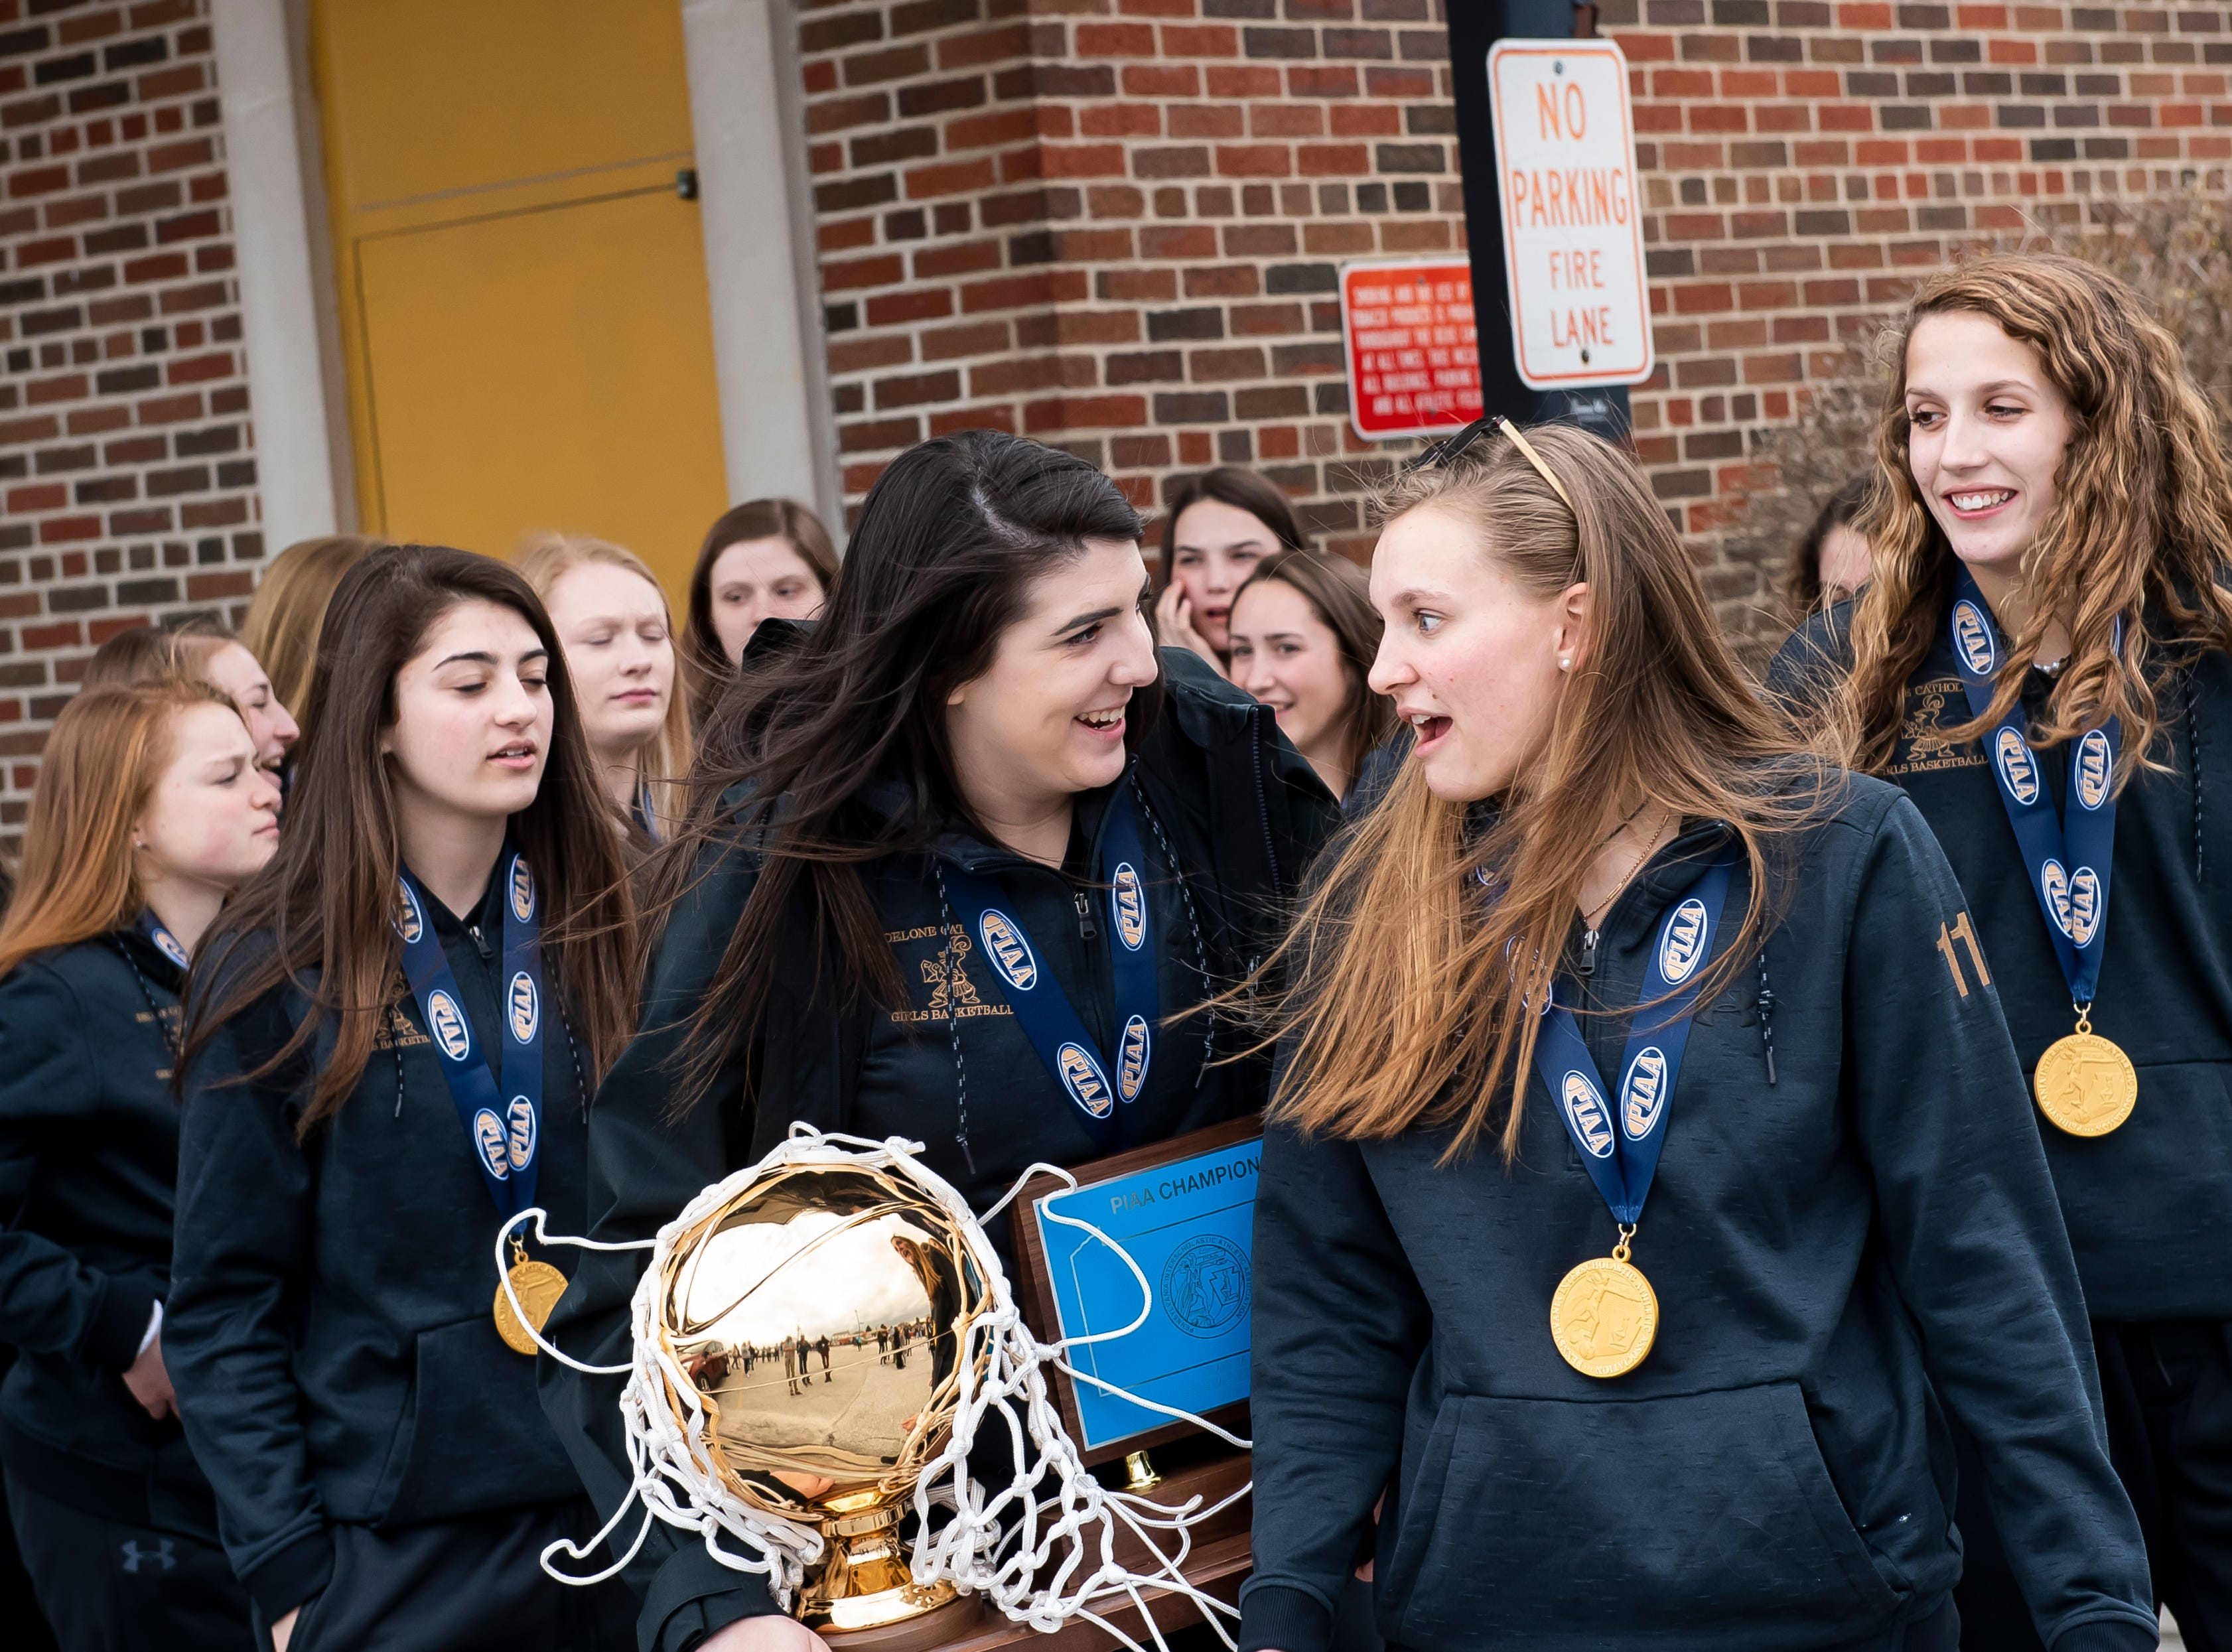 Delone Catholic's Bradi Zumbrum and Riley Vingsen lead the Squirettes before the start of a parade in McSherrystown celebrating their PIAA championship on Thursday, March 28, 2019.